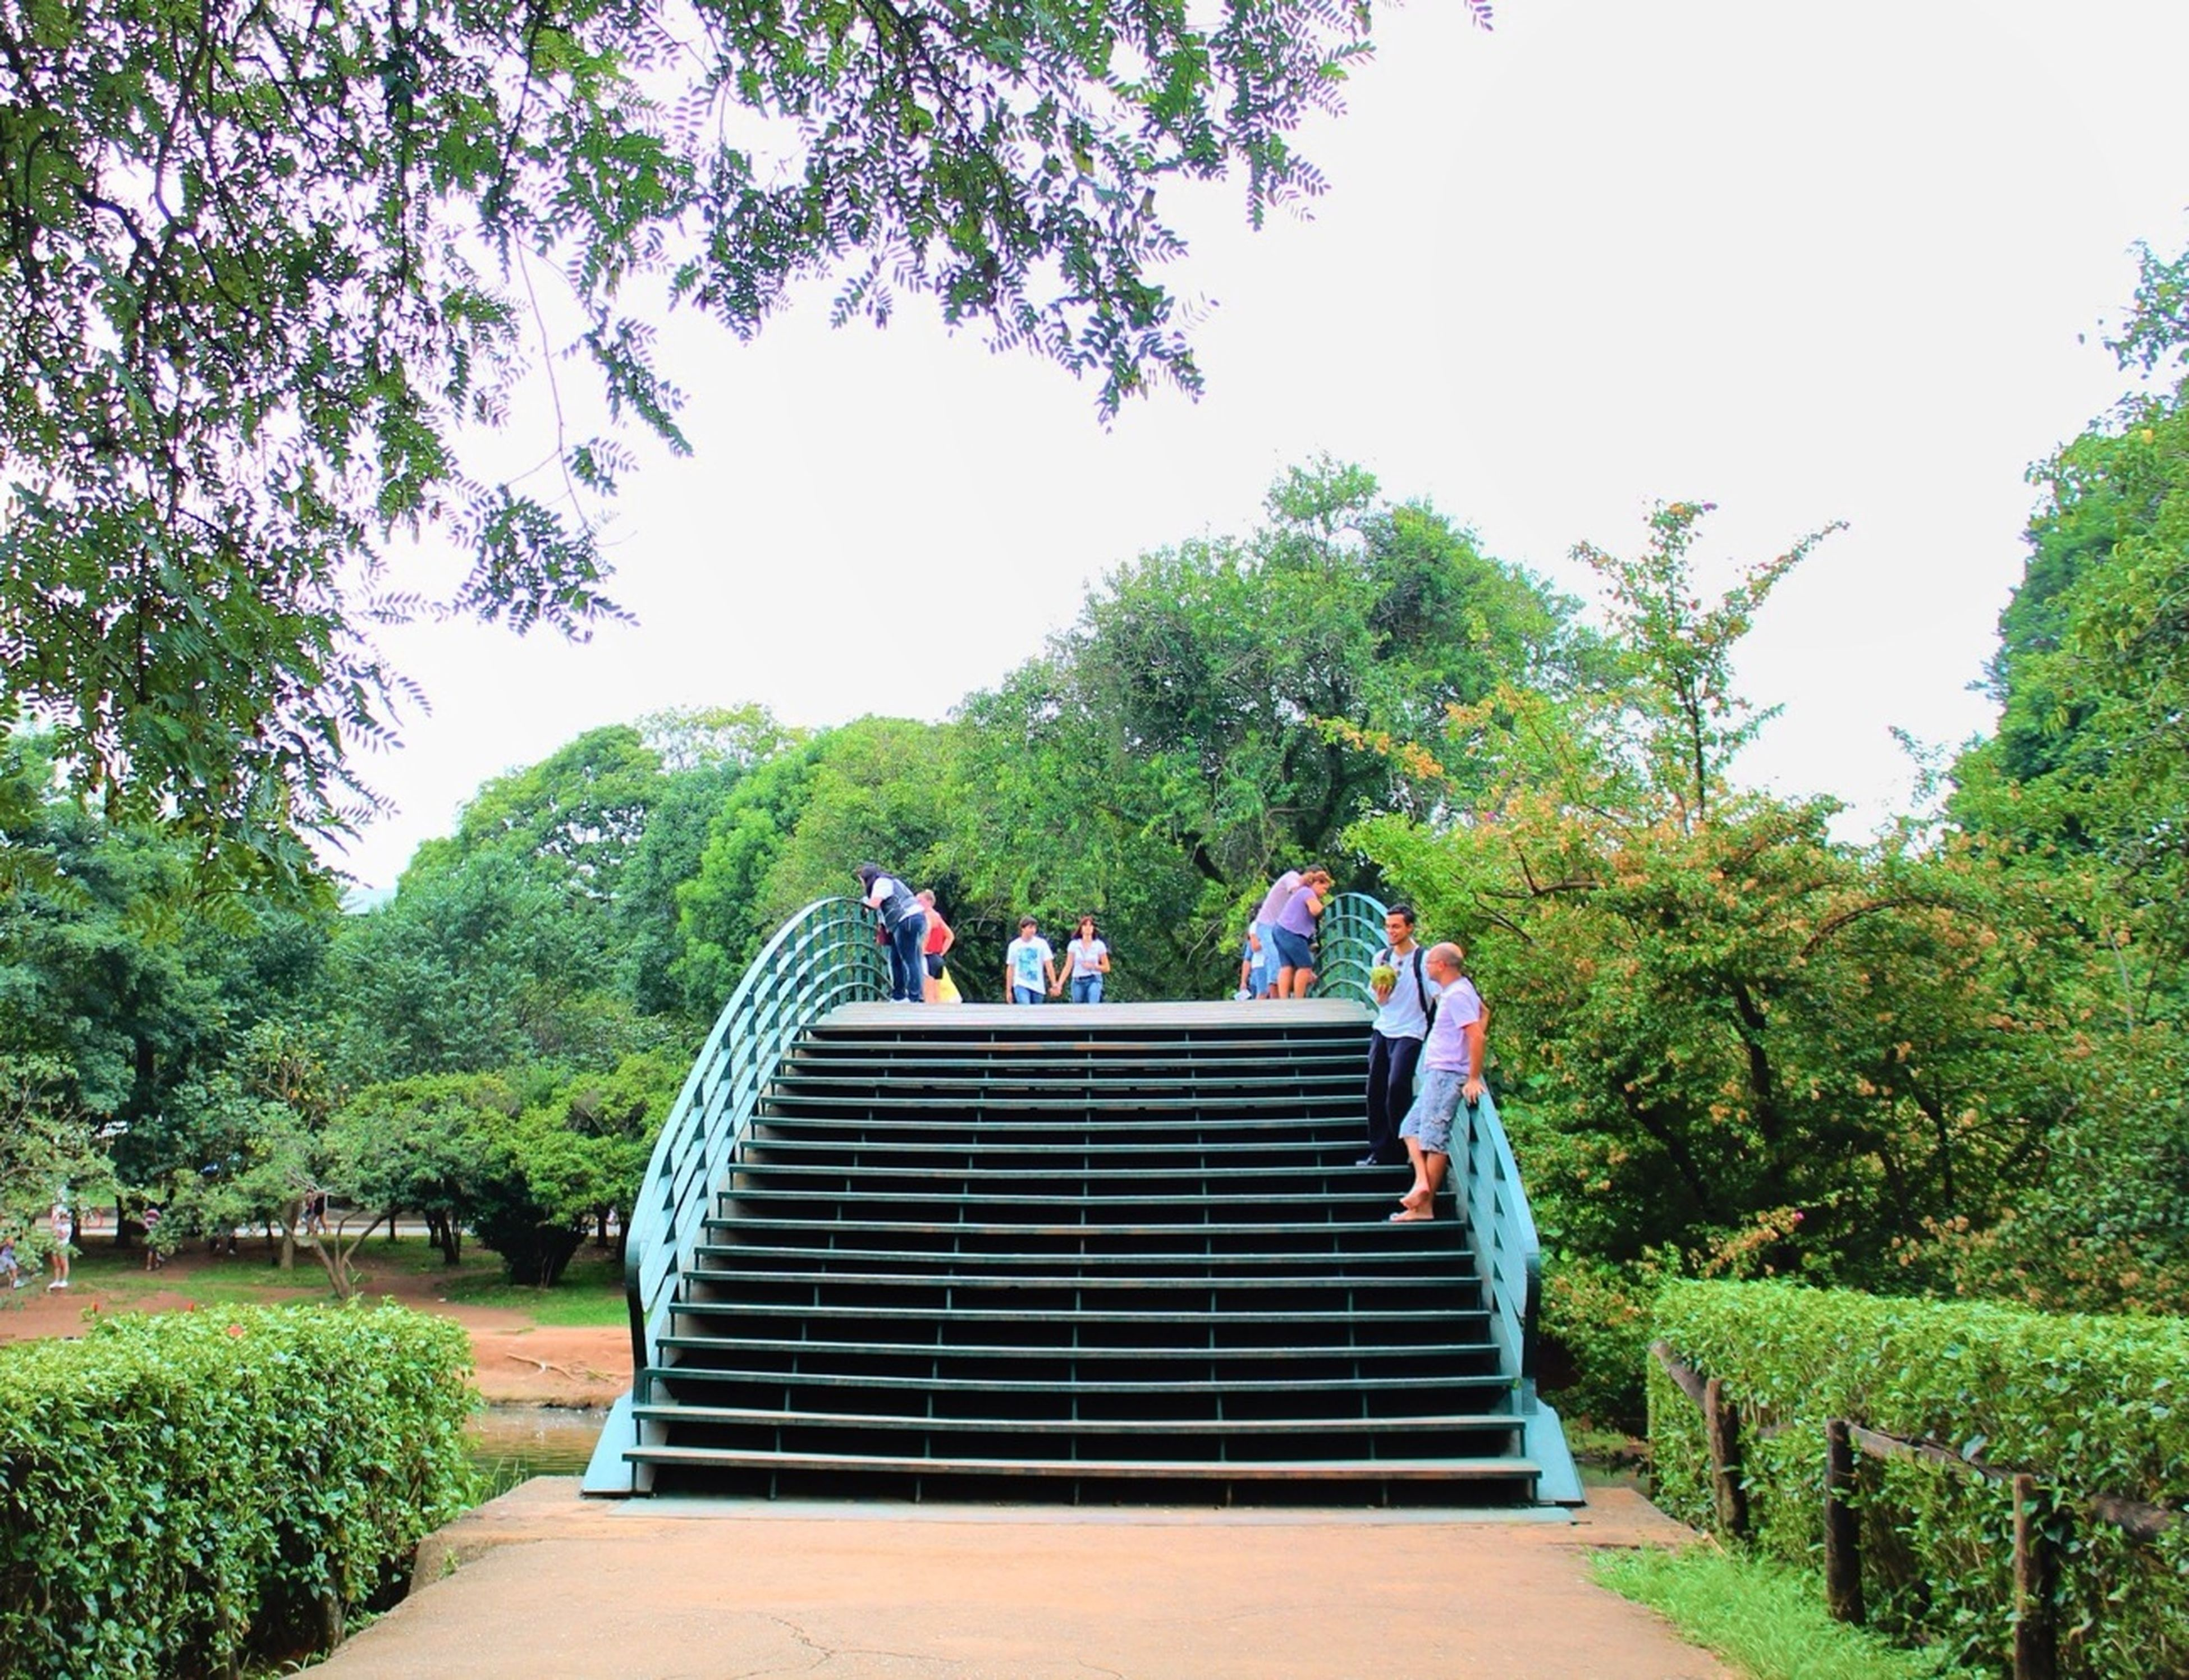 steps, tree, men, steps and staircases, person, lifestyles, leisure activity, staircase, the way forward, railing, clear sky, stairs, walking, built structure, tourist, togetherness, growth, rear view